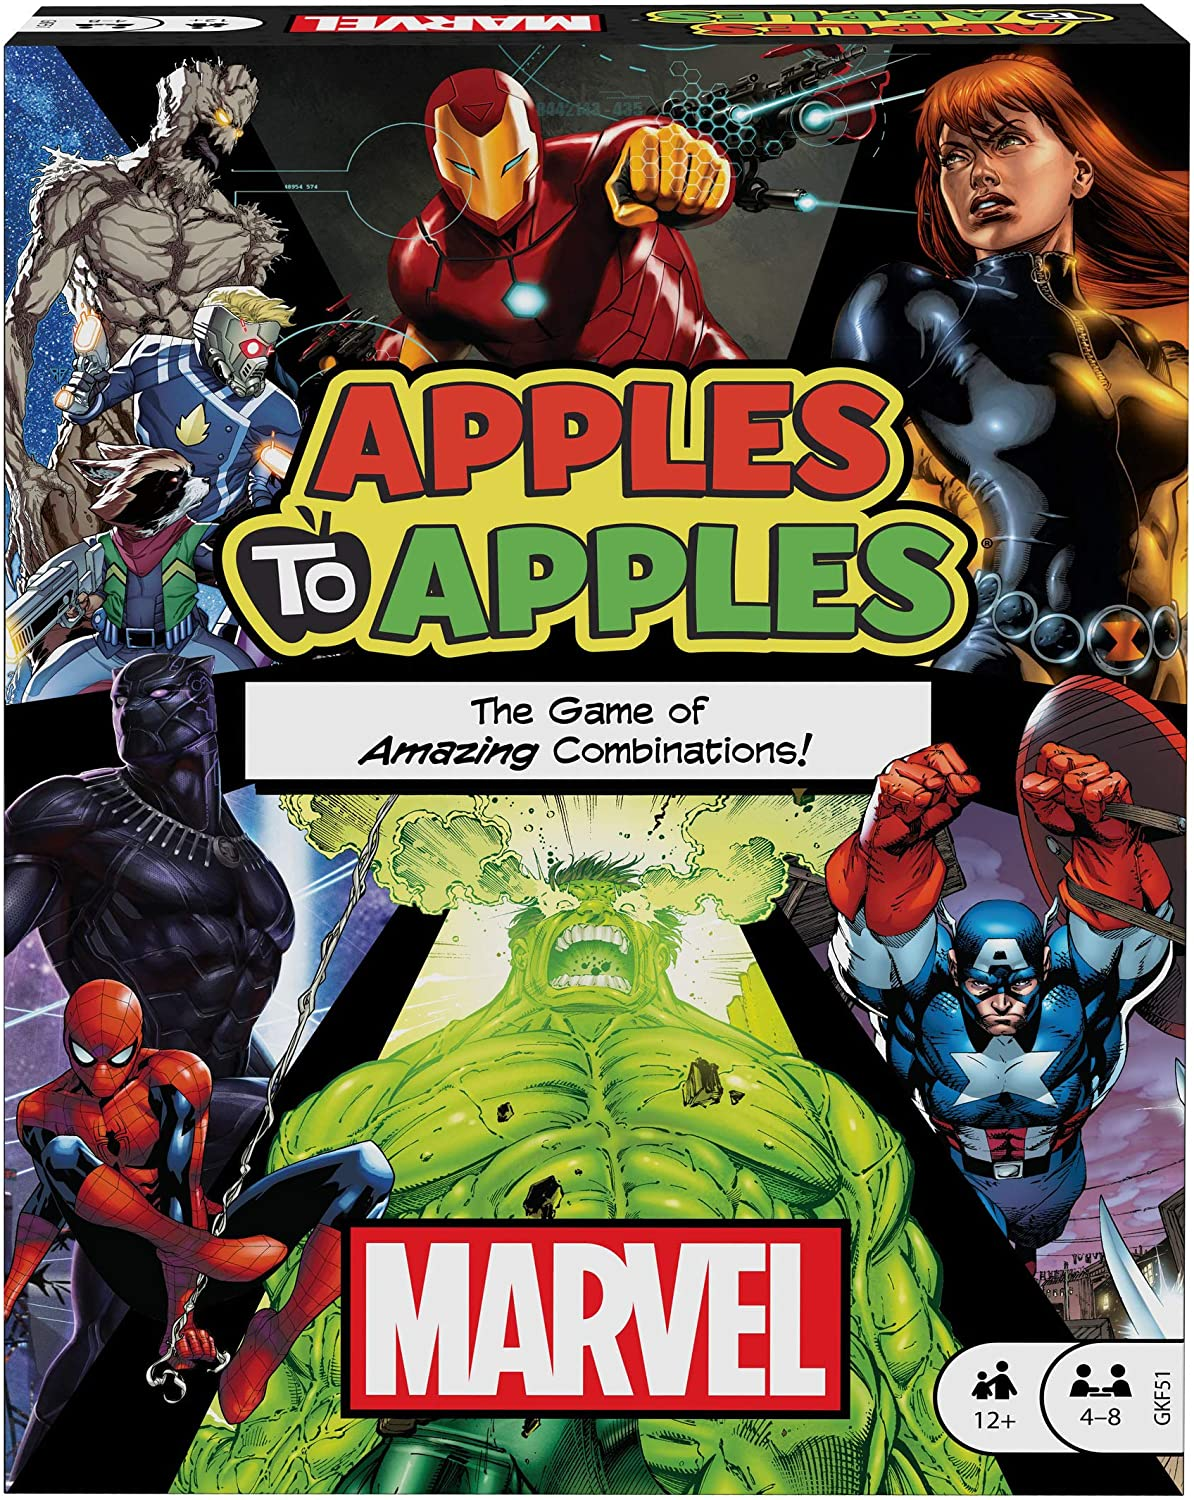 Apples to Apples: Marvel Edition Board Game of Amazing Combinations for 4 to 8 Players Ages 12 Years & Older, Gift for Kid, Adult or Family Game Night